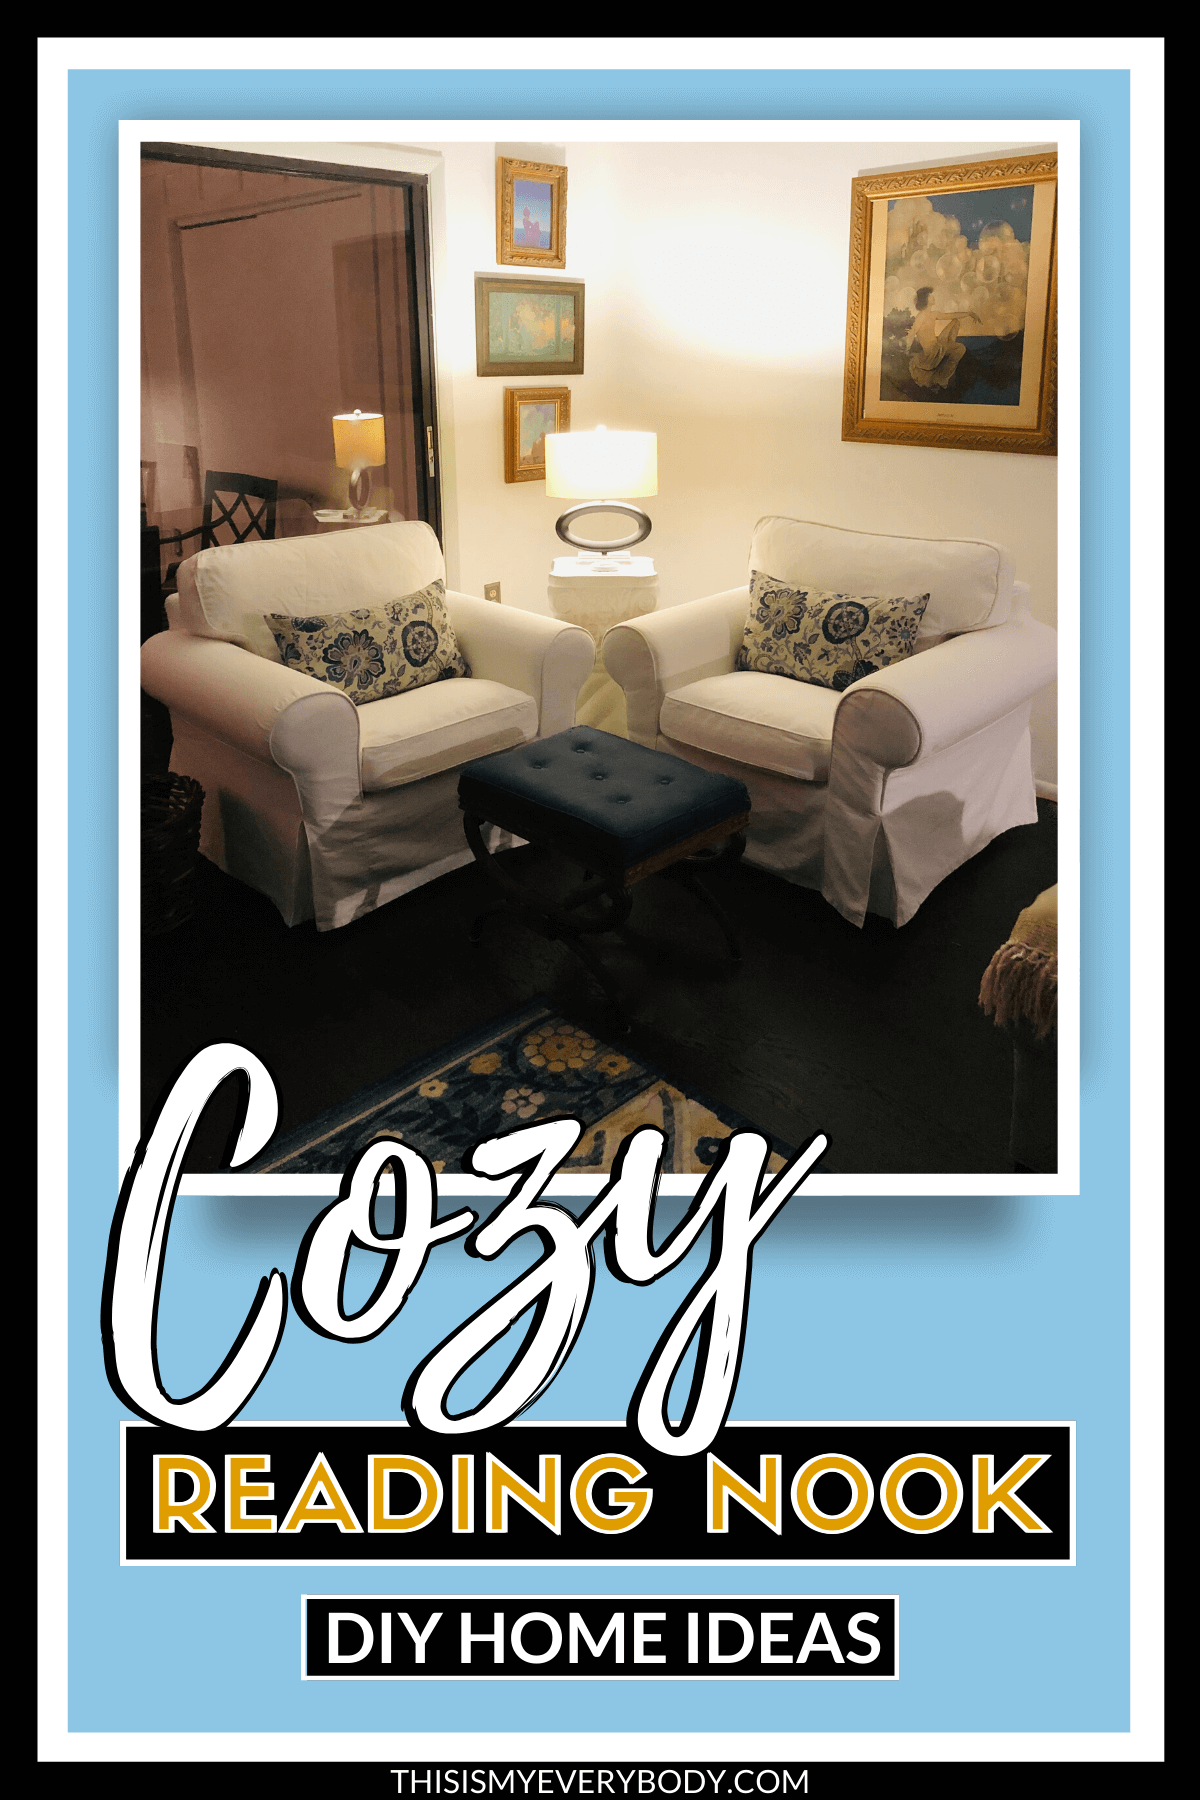 Diy Cozy Reading Nook This Is My Everybody Books Diy Home Ideas Denise Wilbanks